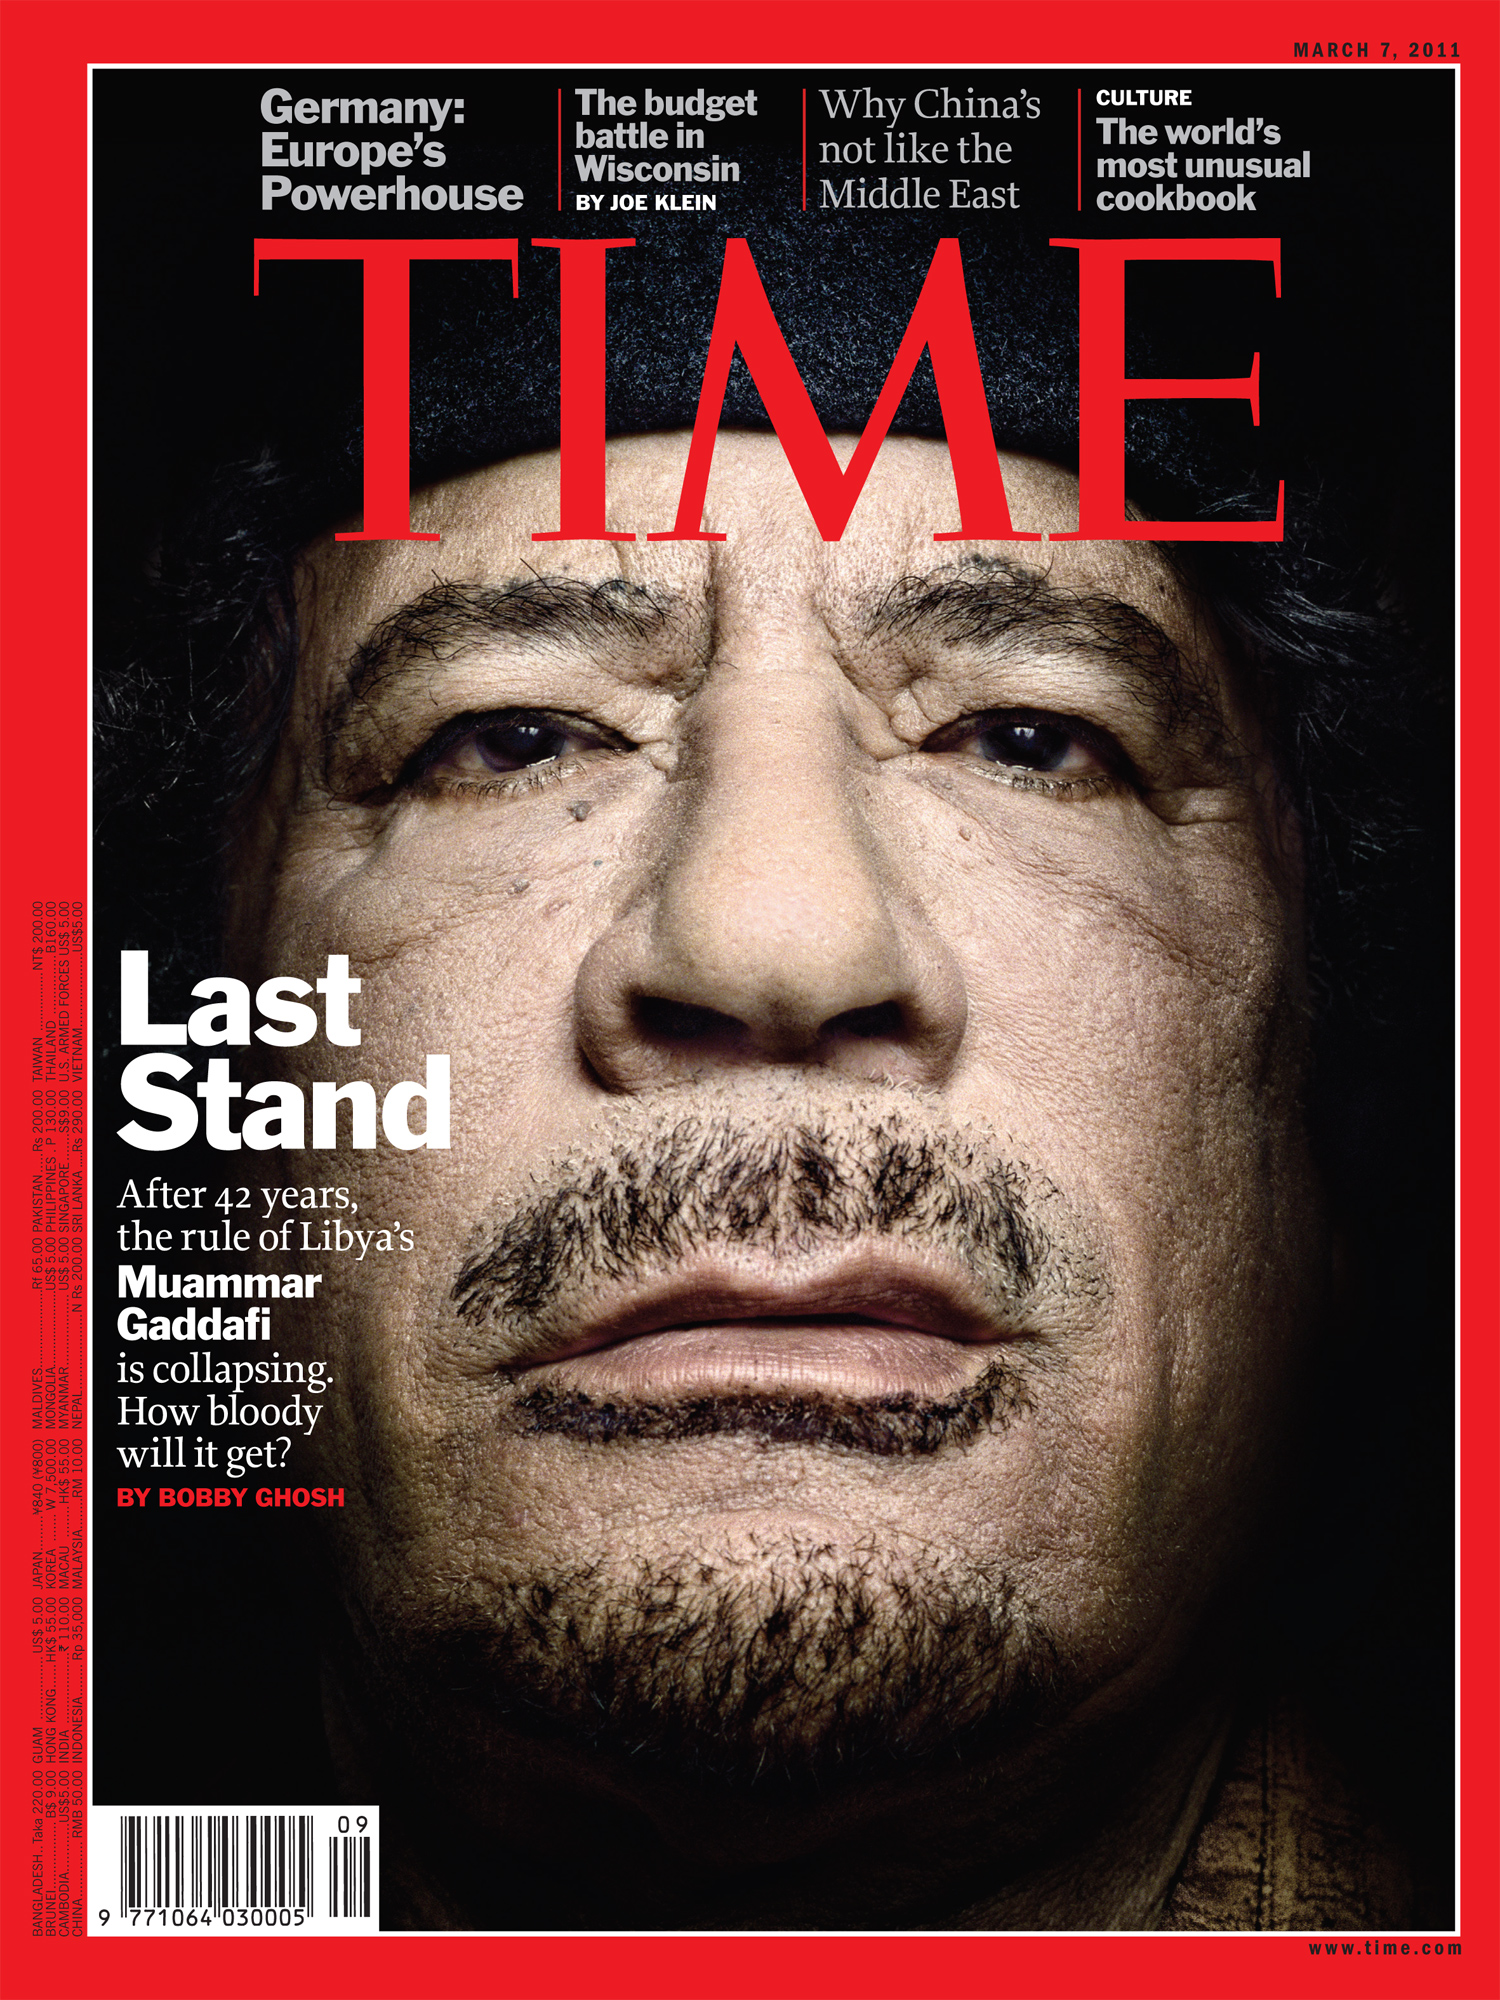 The cover of TIME International, March 7, 2011.